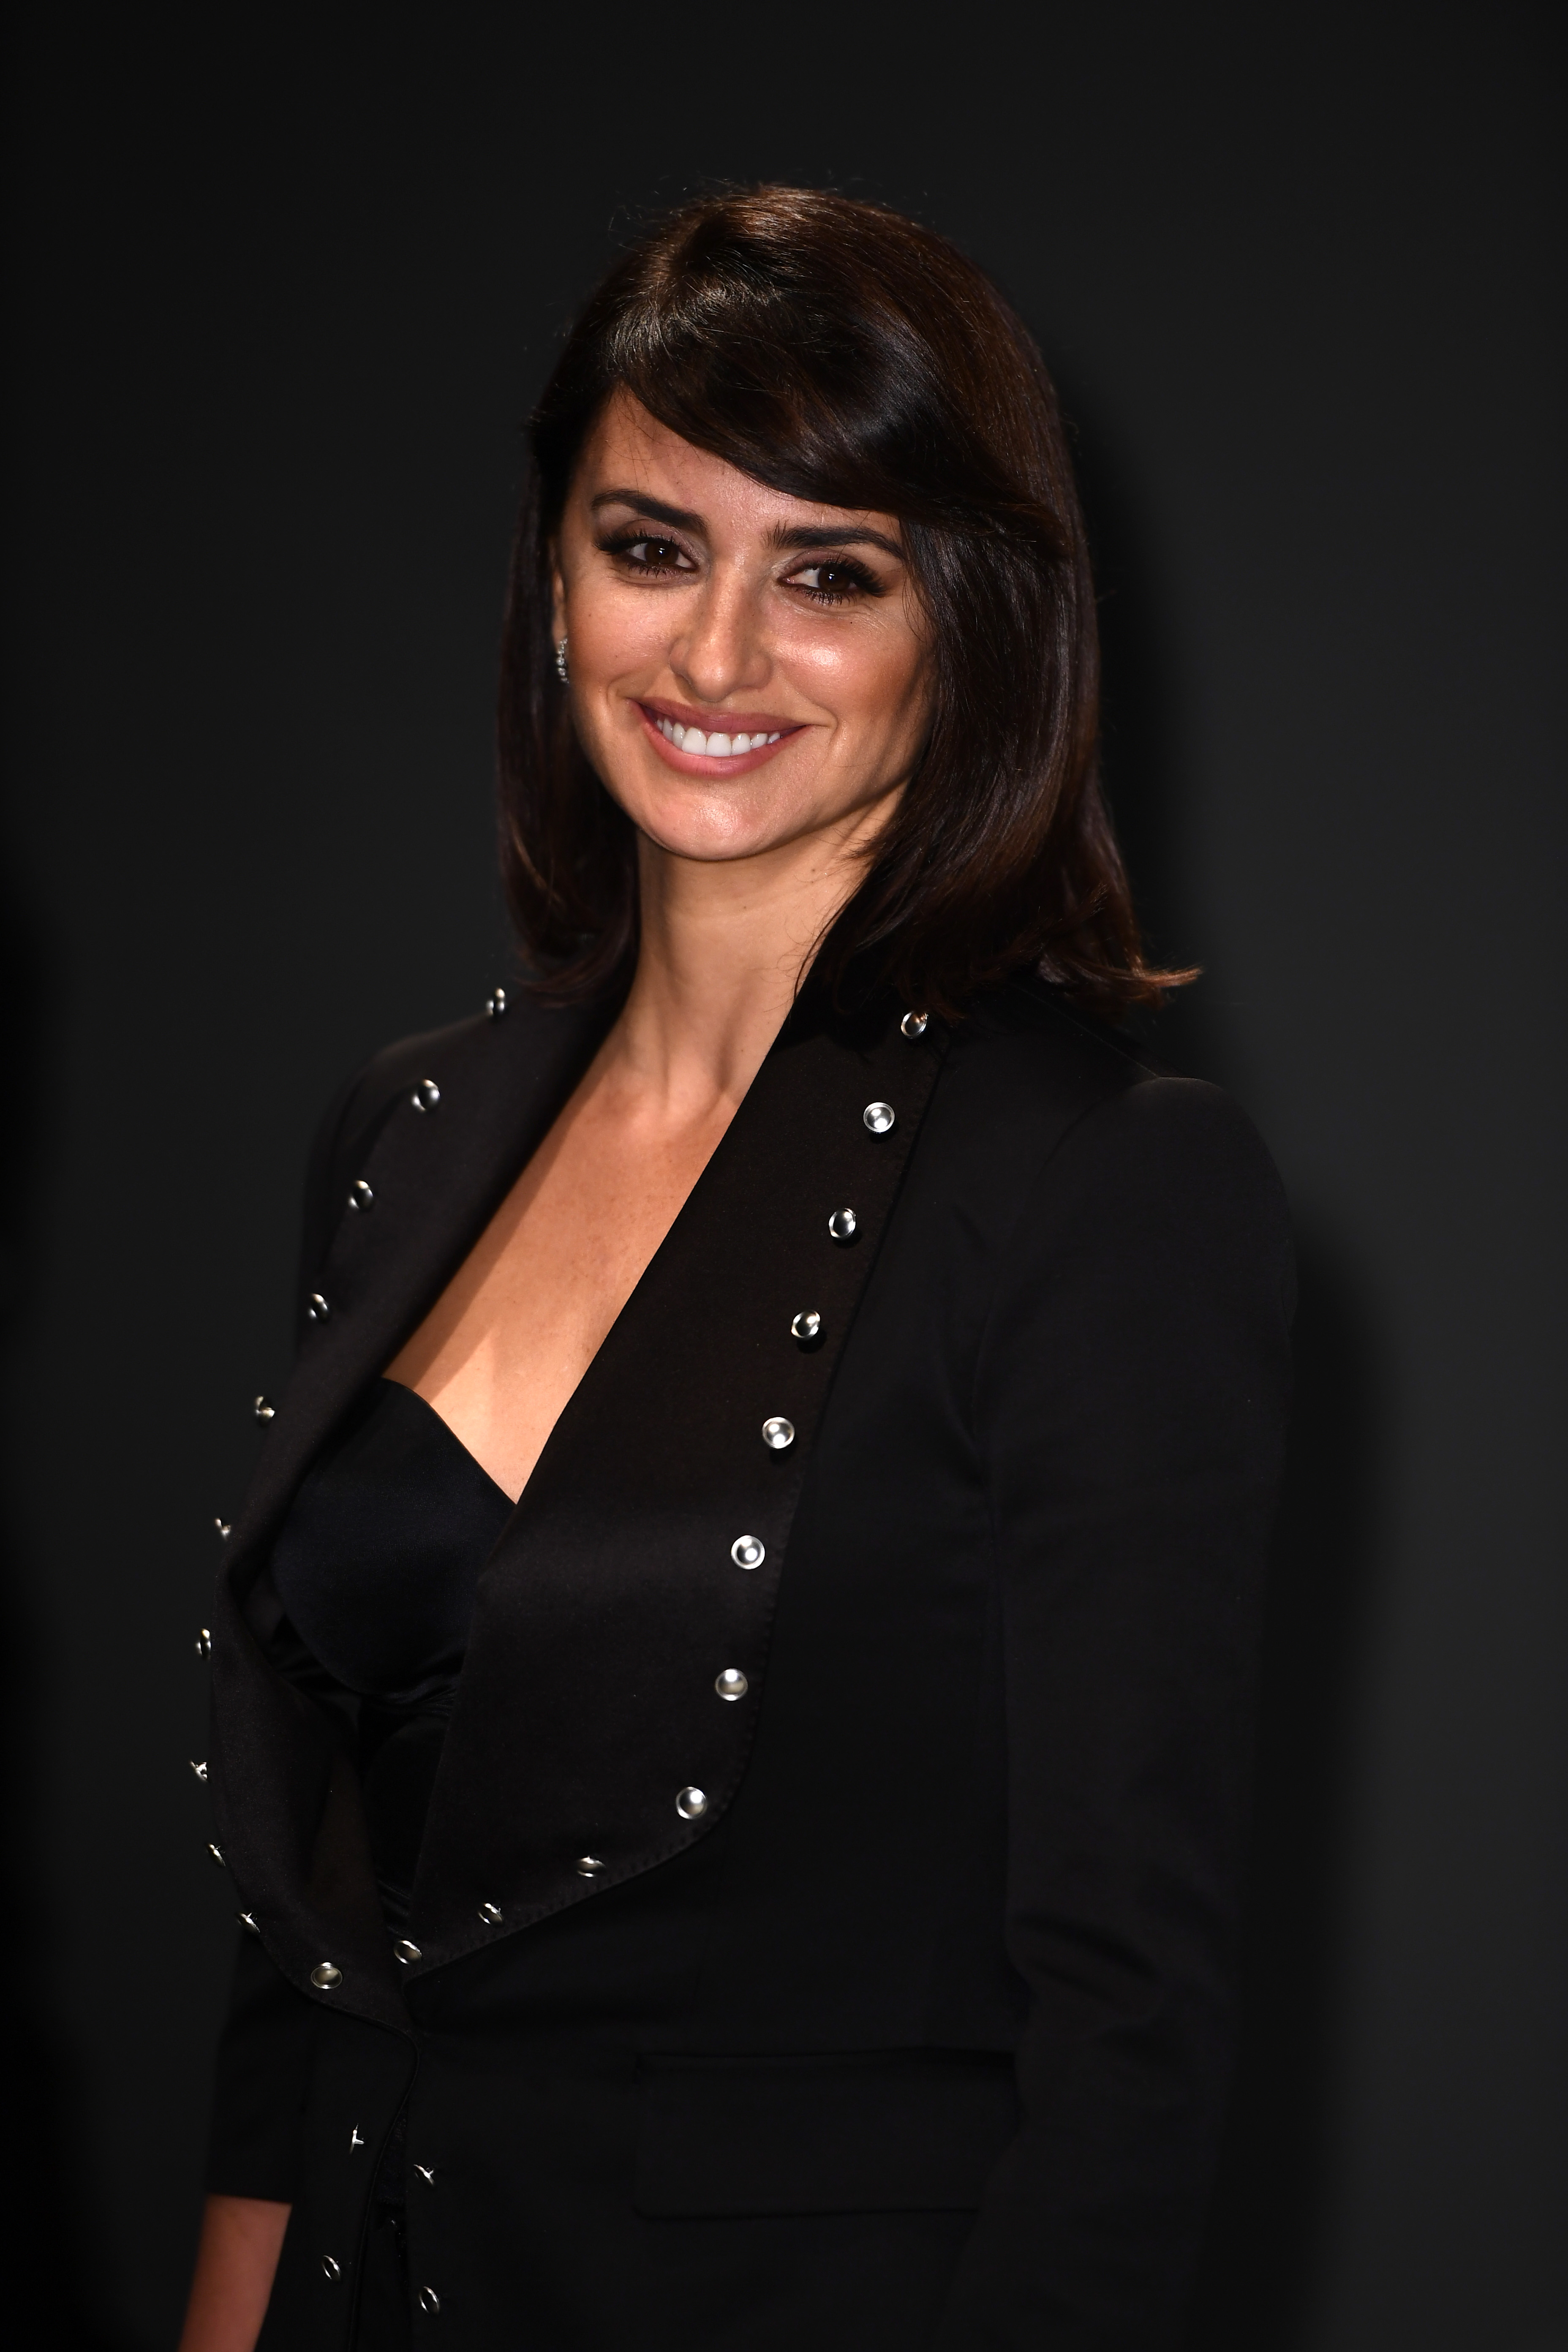 LONDON, ENGLAND - FEBRUARY 20:  Actress Penelope Cruz wearing Burberry attends the Burberry February 2017 Show during London Fashion Week February 2017 at Makers House on February 20, 2017 in London, England.  (Photo by Ian Gavan/Getty Images for Burberry) *** Local Caption *** Penelope Cruz